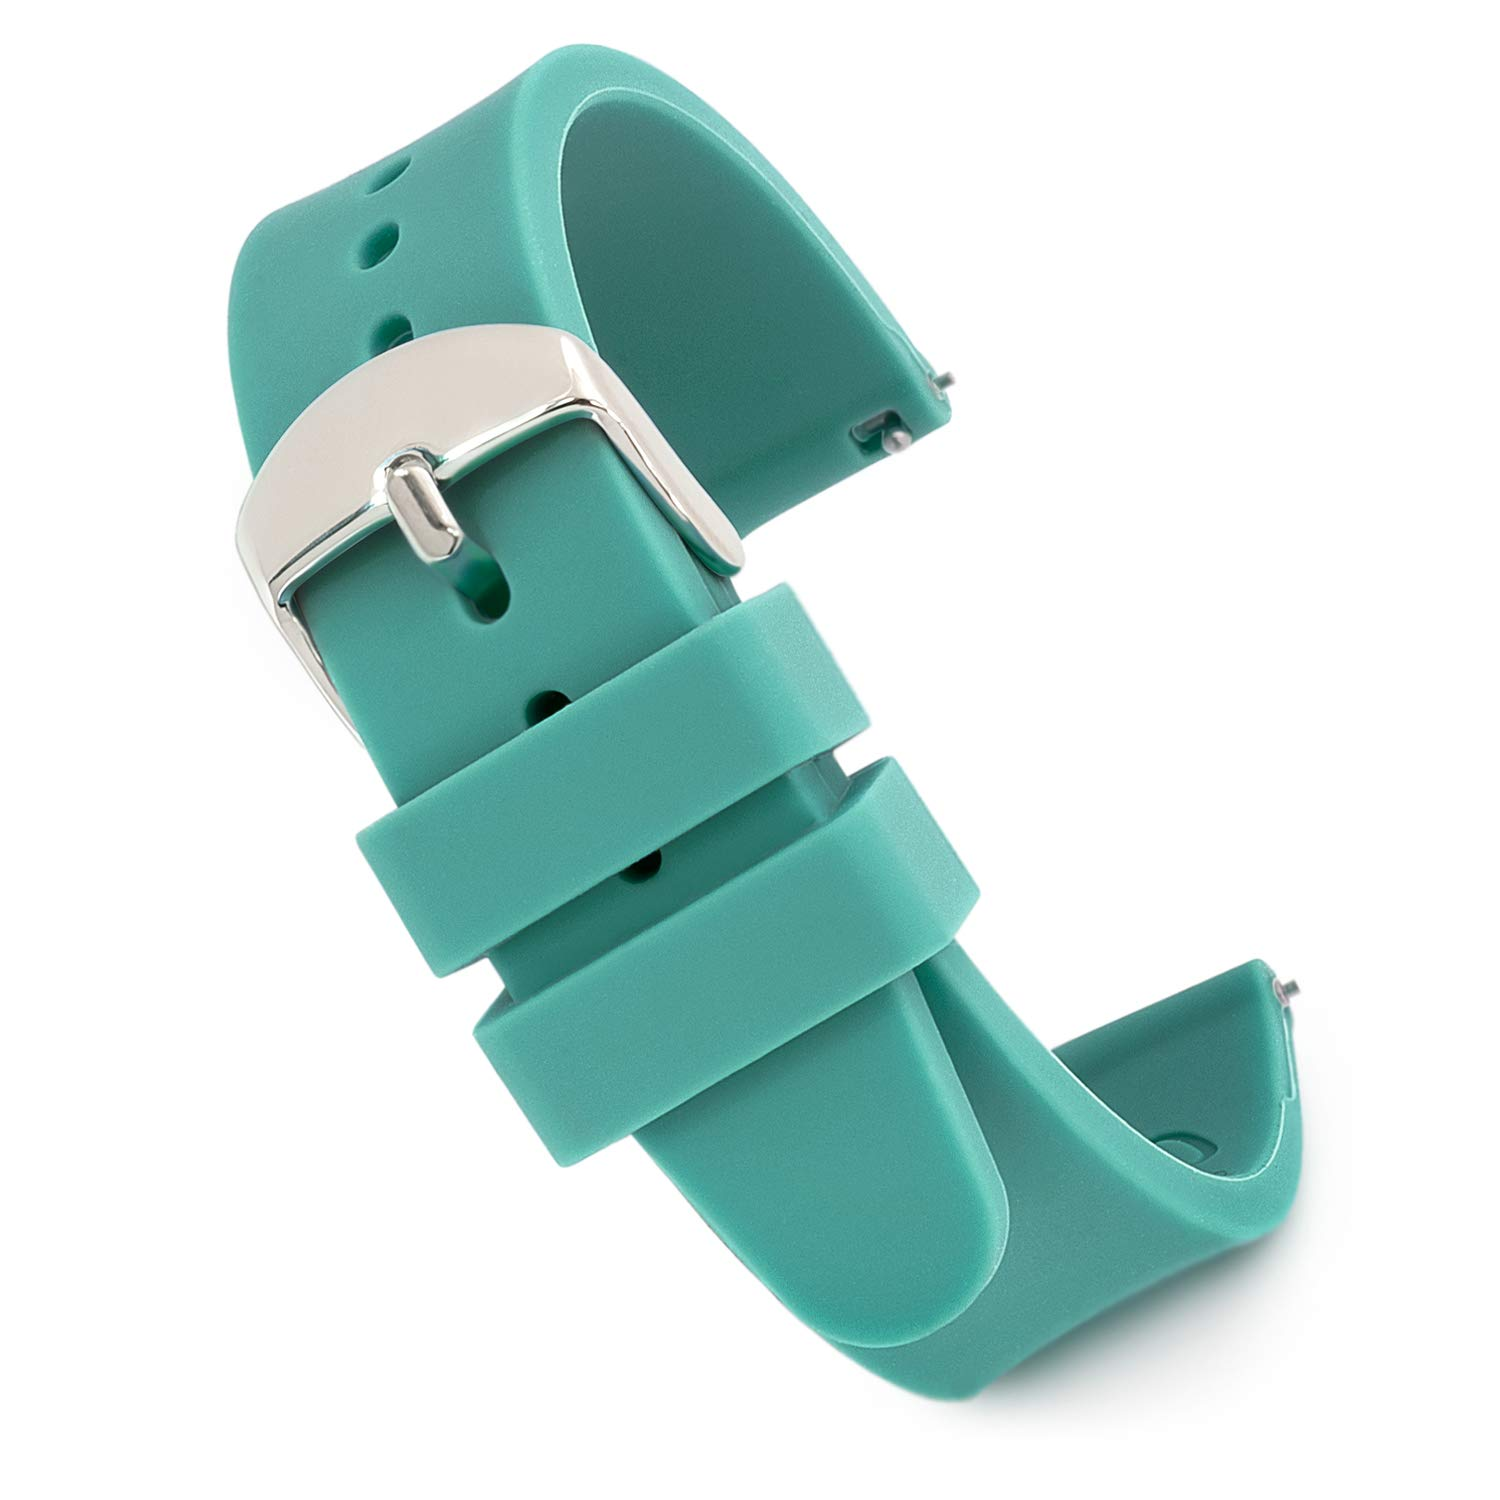 Speidel Scrub Watch Replacement 18mm Teal Silicone Rubber Band